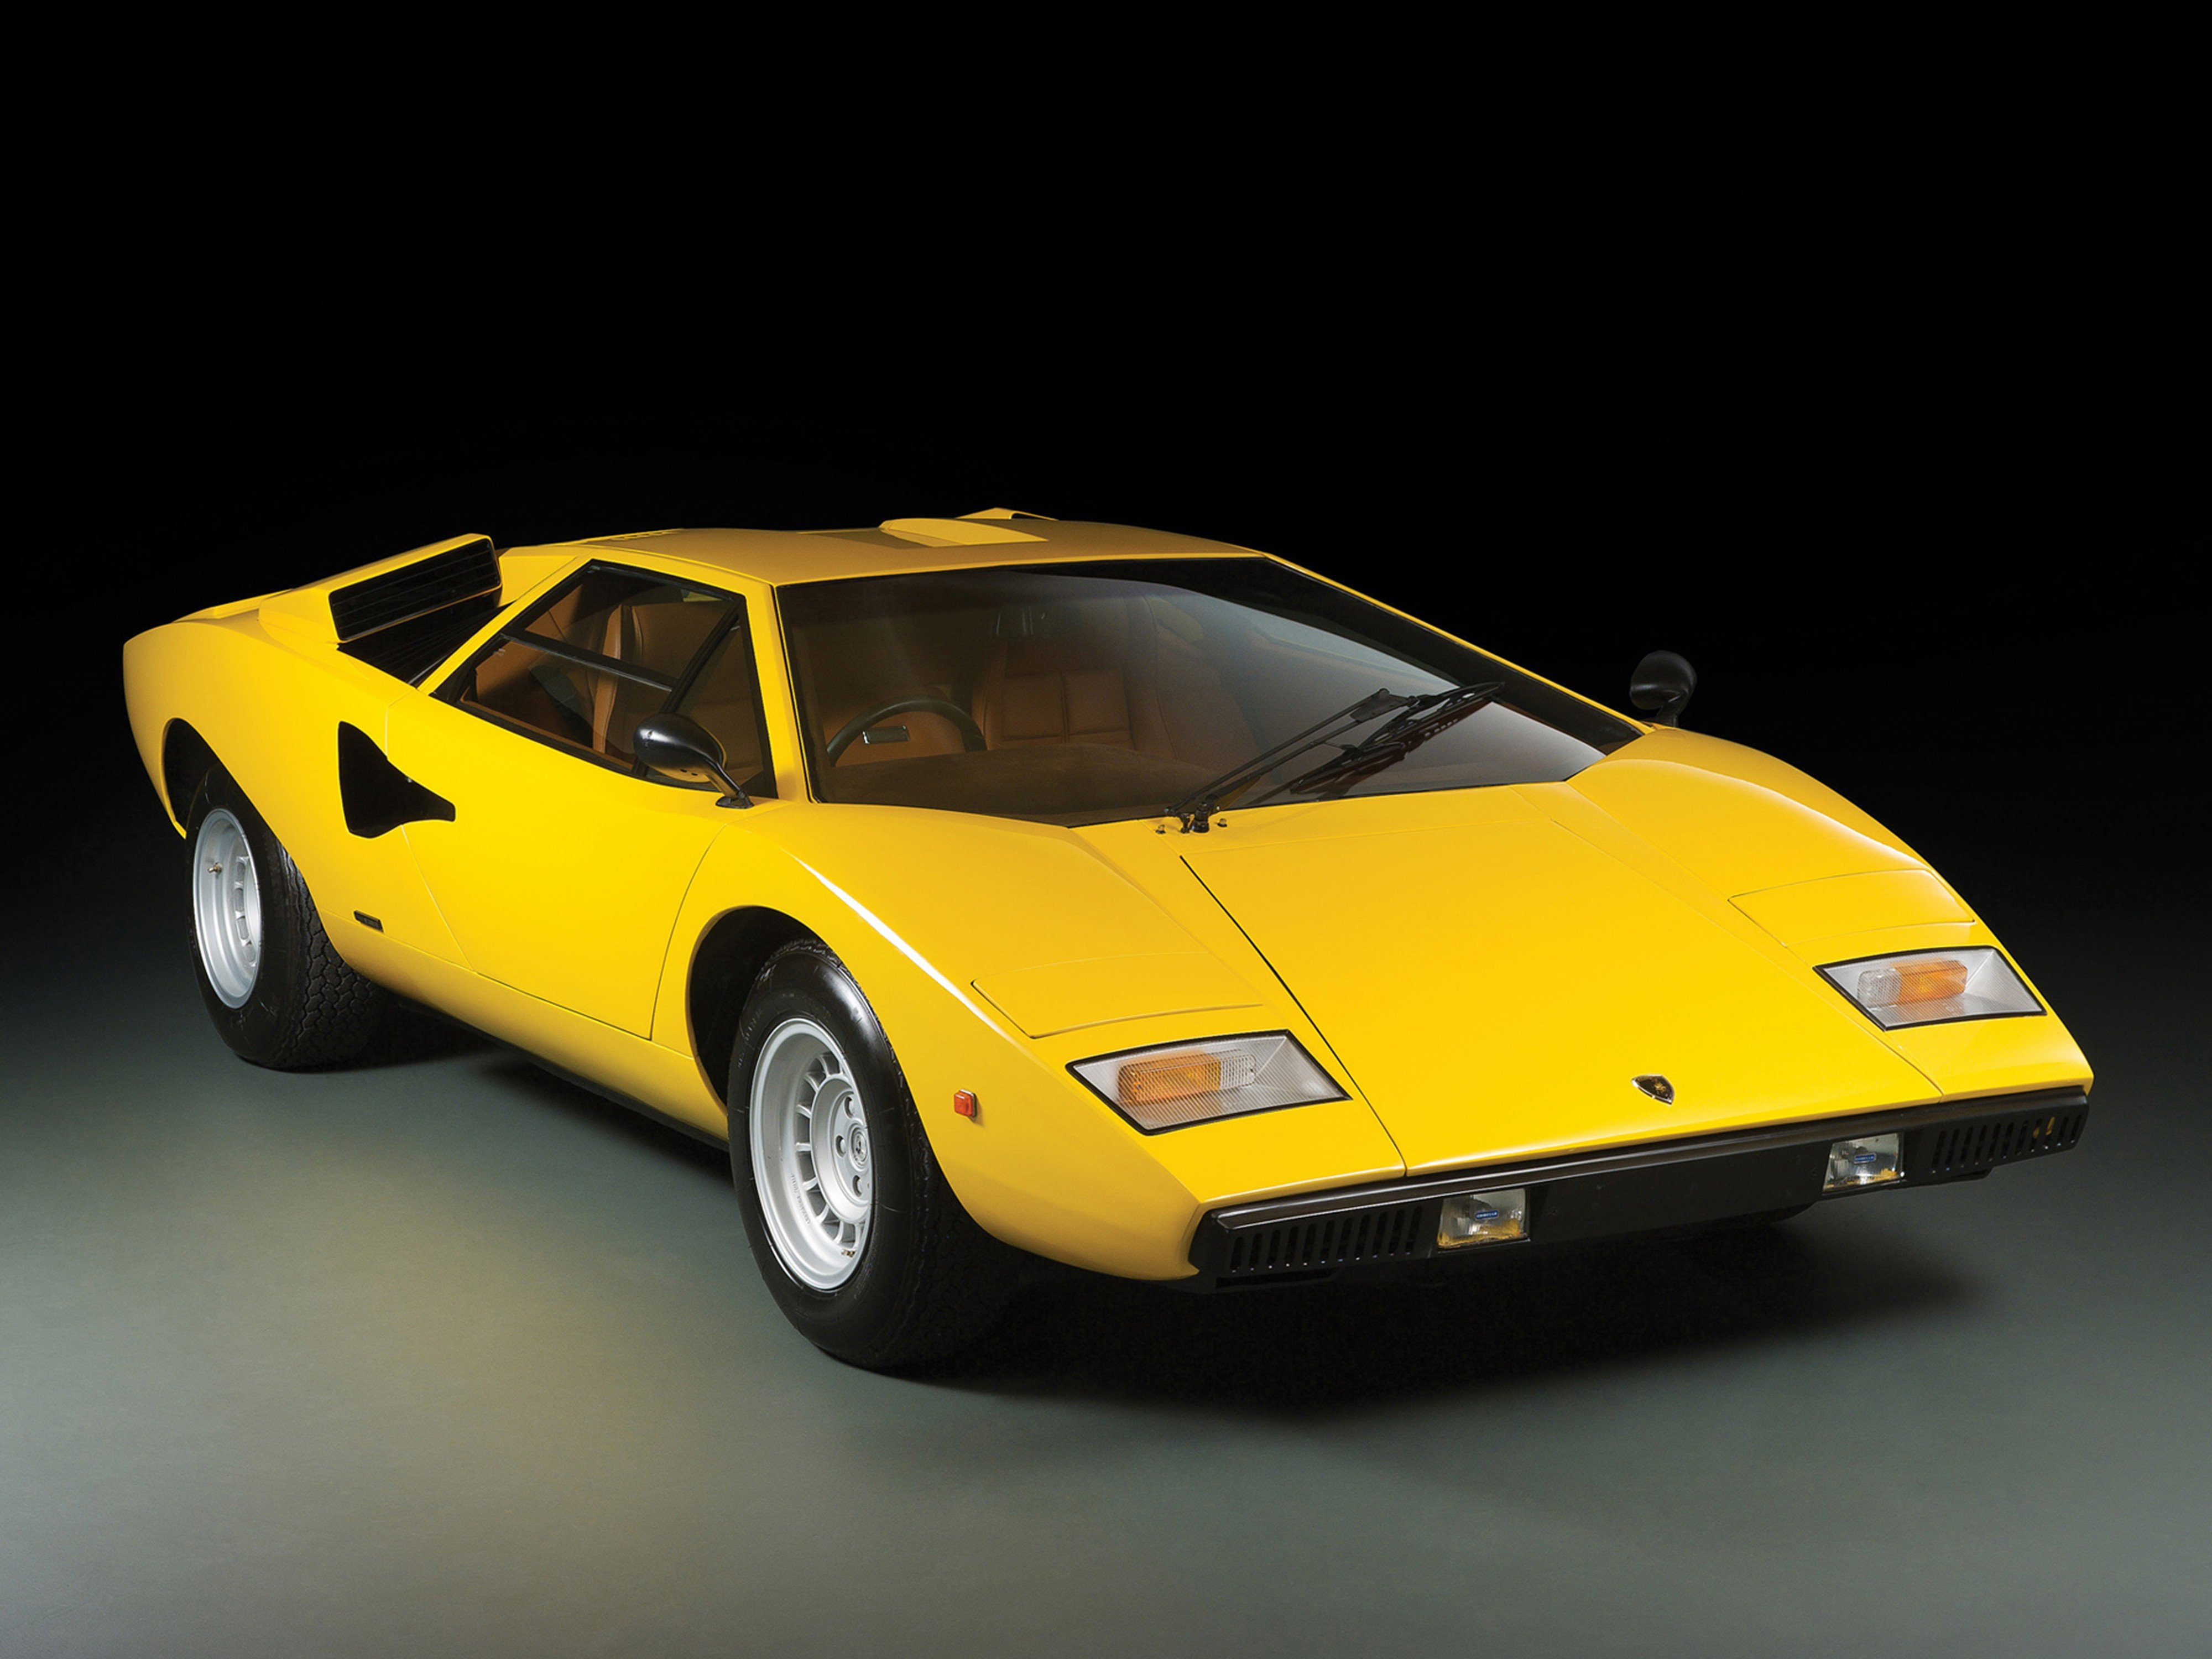 1973 lamborghini countach car italy supercar 4000x3000. Black Bedroom Furniture Sets. Home Design Ideas